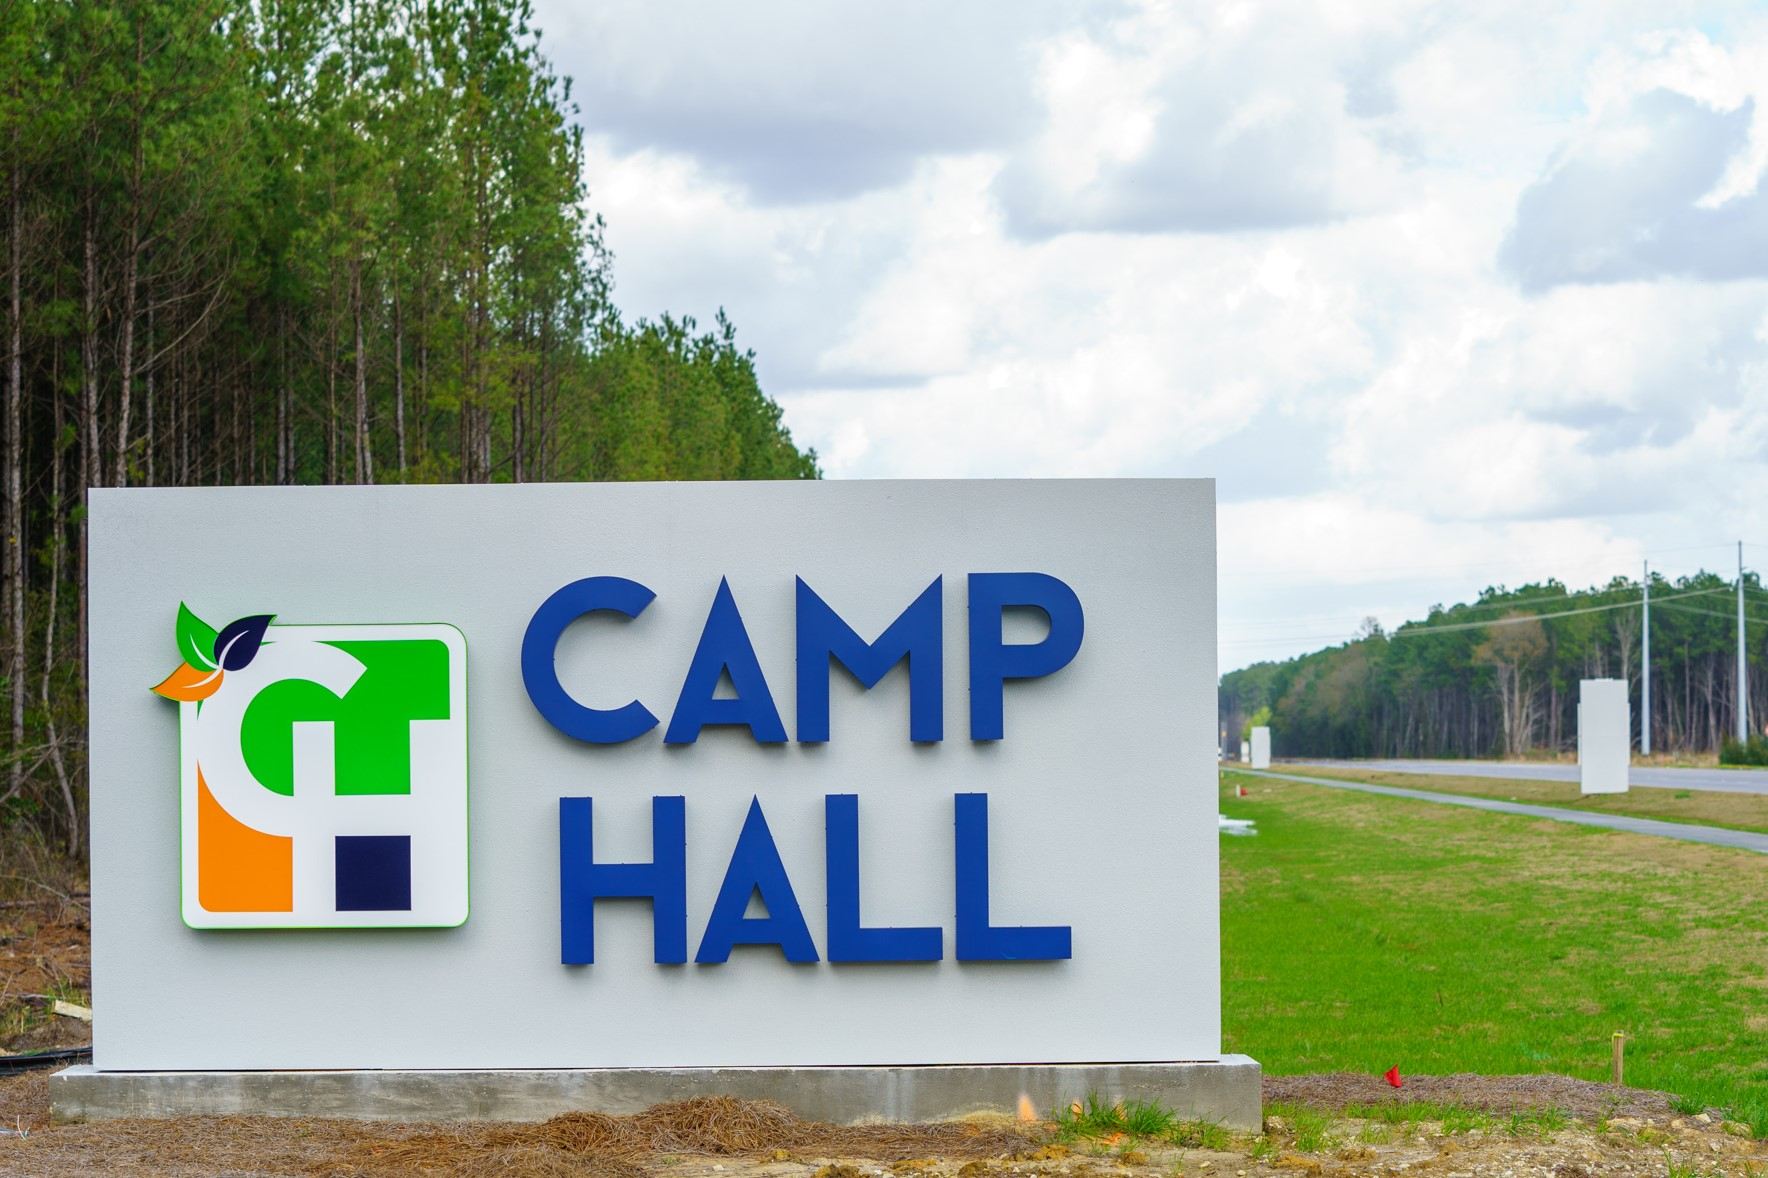 Camp Hall Ranks No. 7 in Industrial Parks in the Nation, according to Business Facilities Magazine